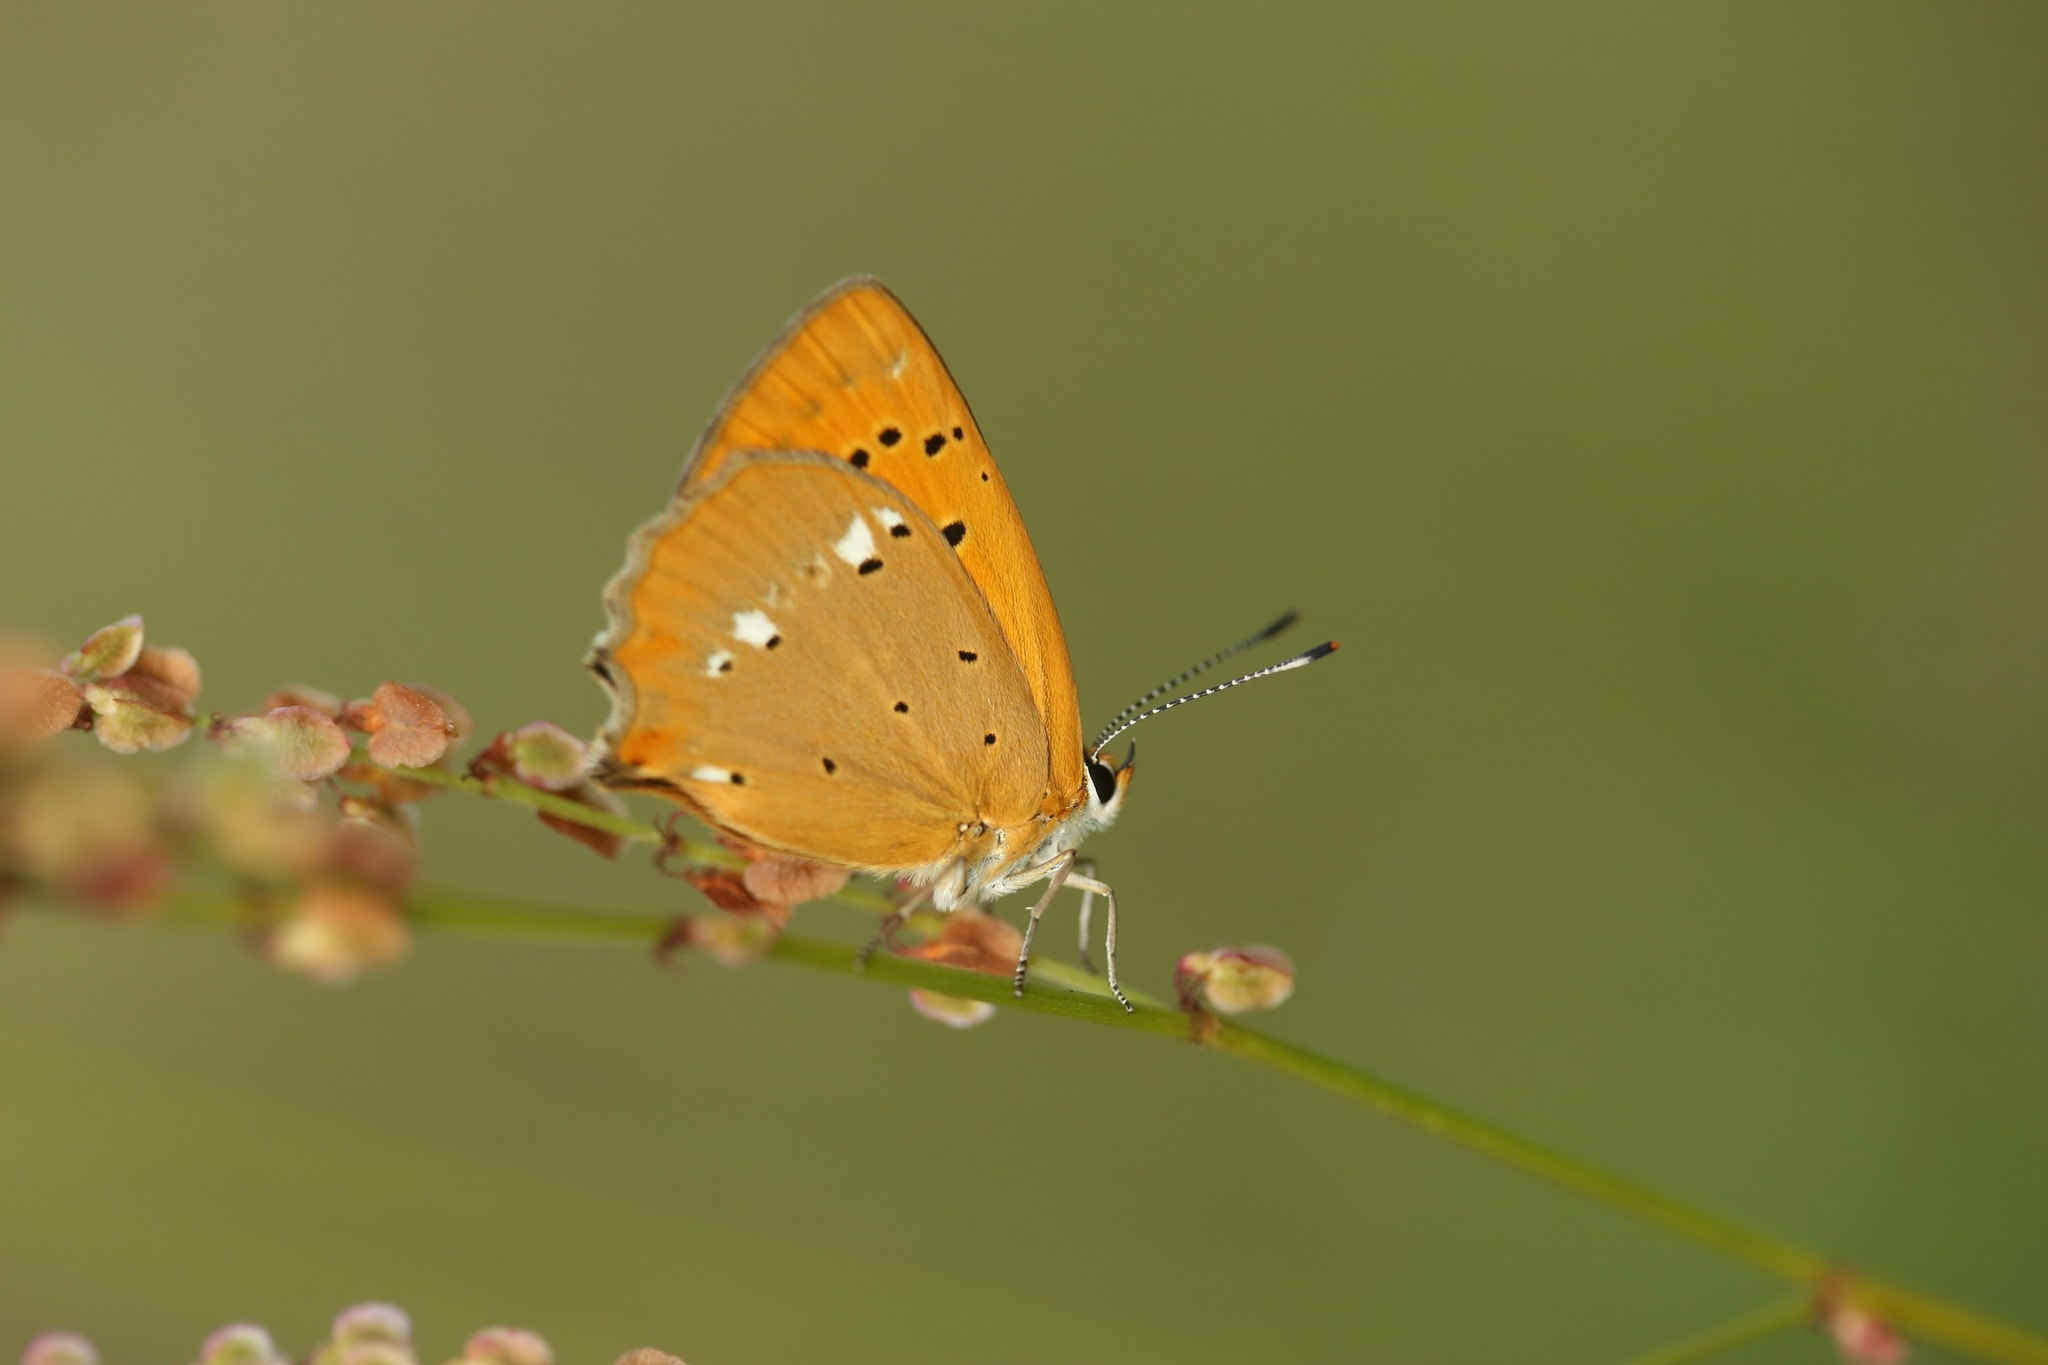 One Of The Scarce Copper Butterflies Photographed On A Photography Holiday To The Same Regions As The NaturesLens Butterflies & Macro Photography Of Bulgaria Photography Holiday